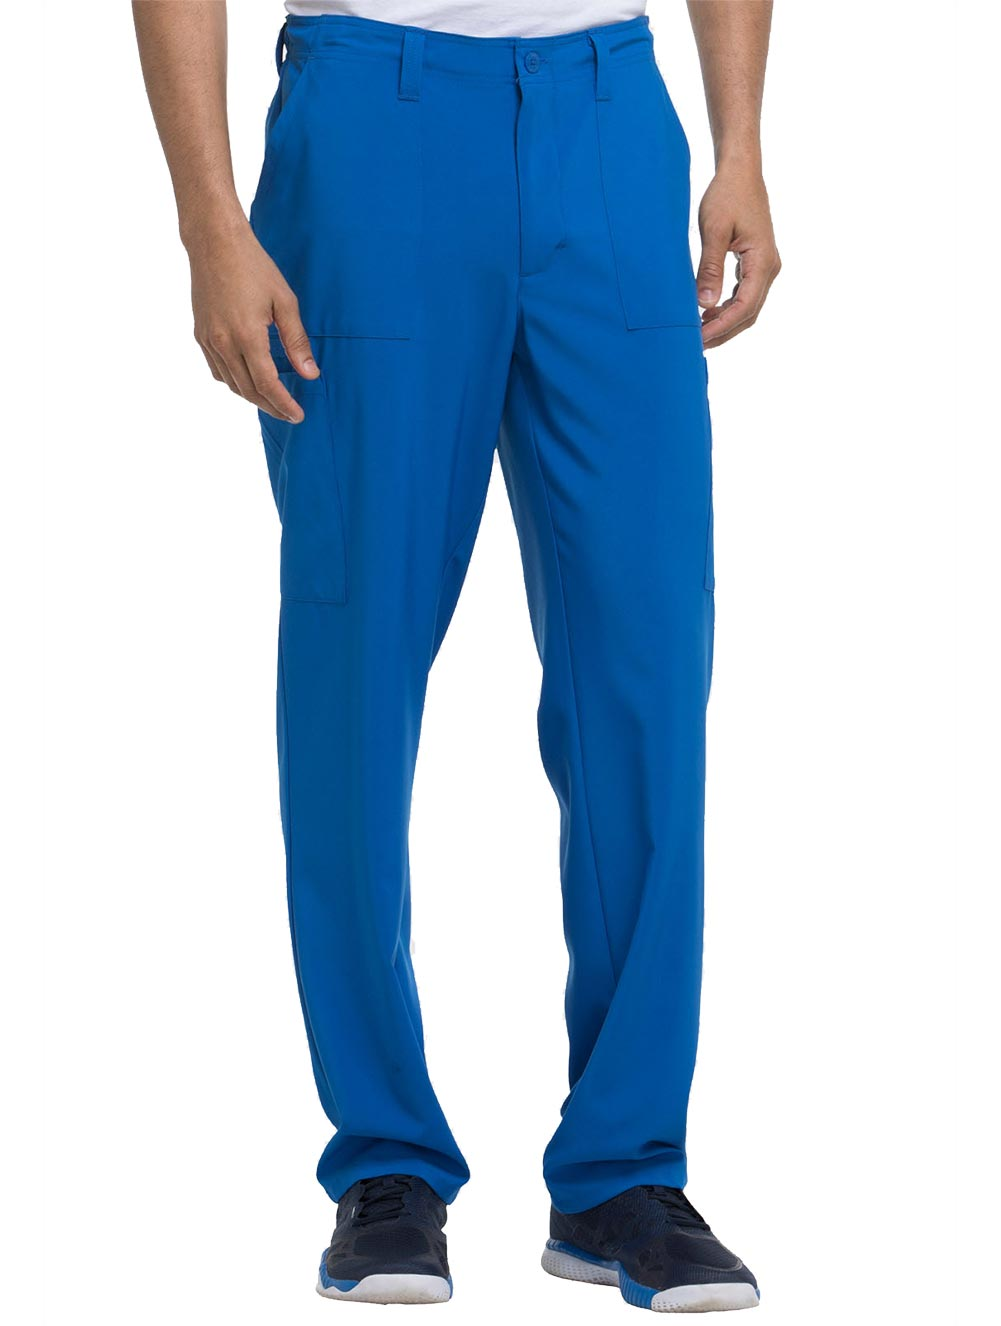 Men's Natural Rise Drawstring Pant